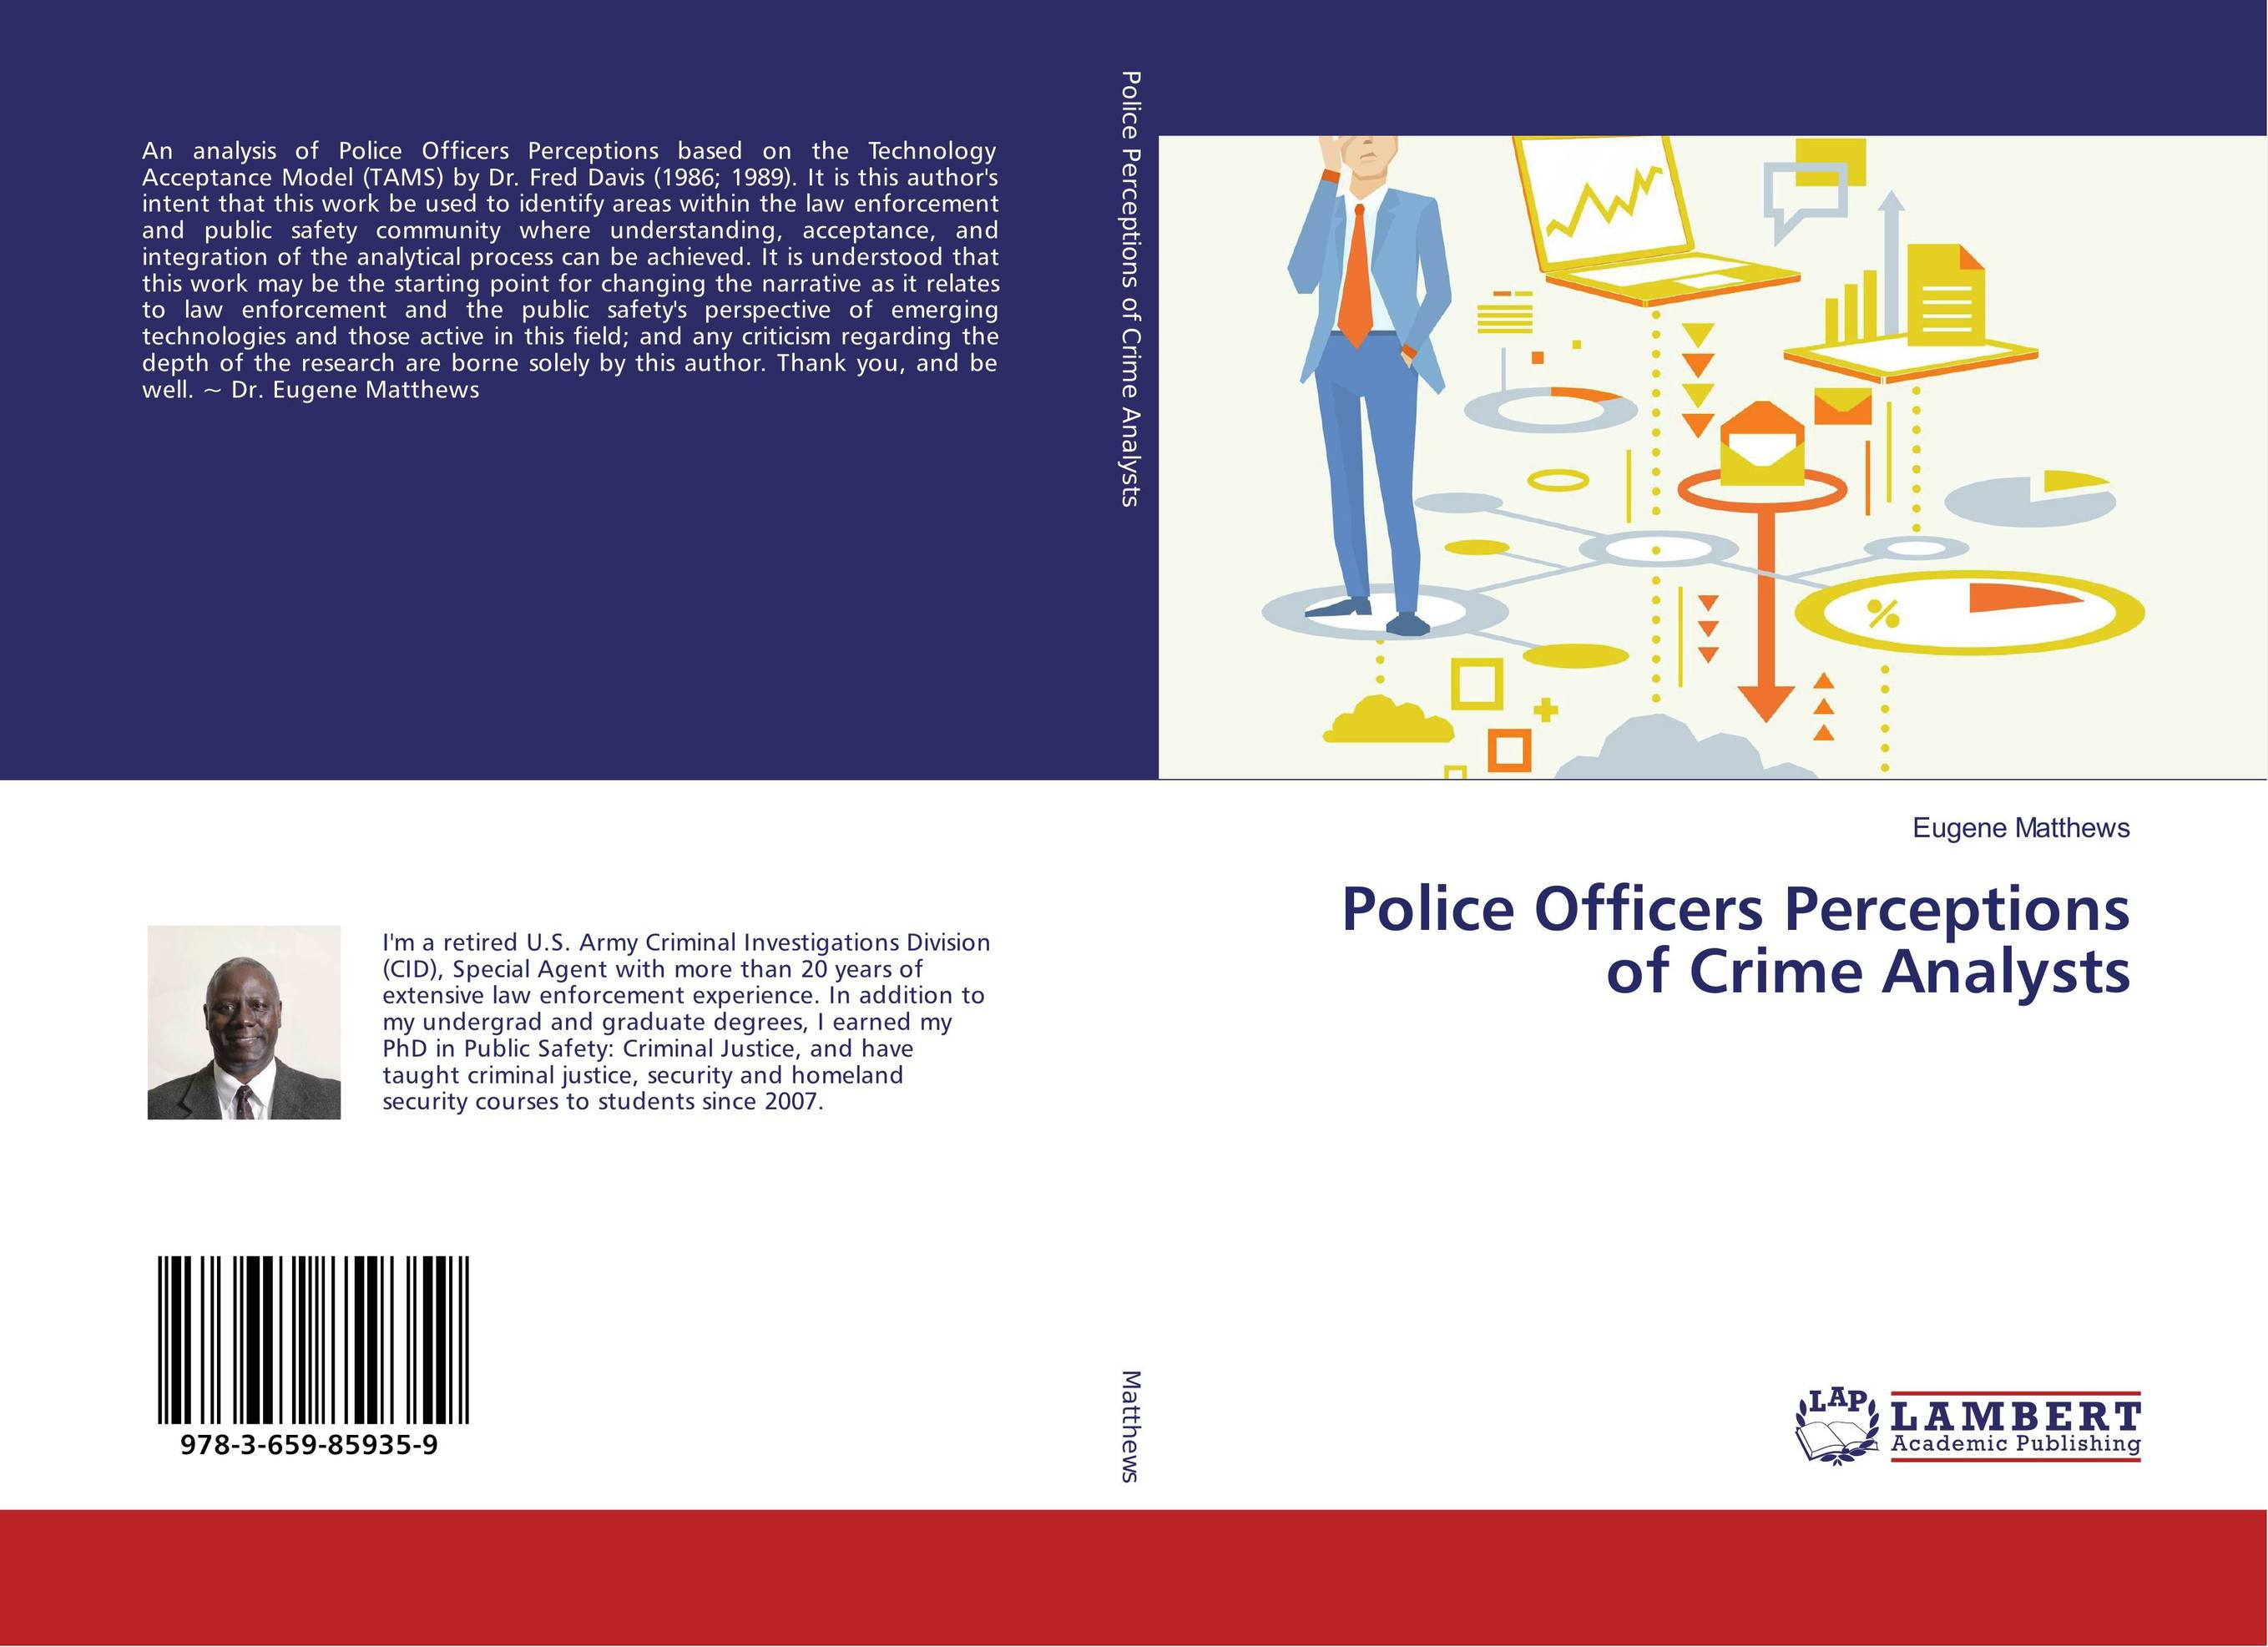 Police Officers Perceptions of Crime Analysts